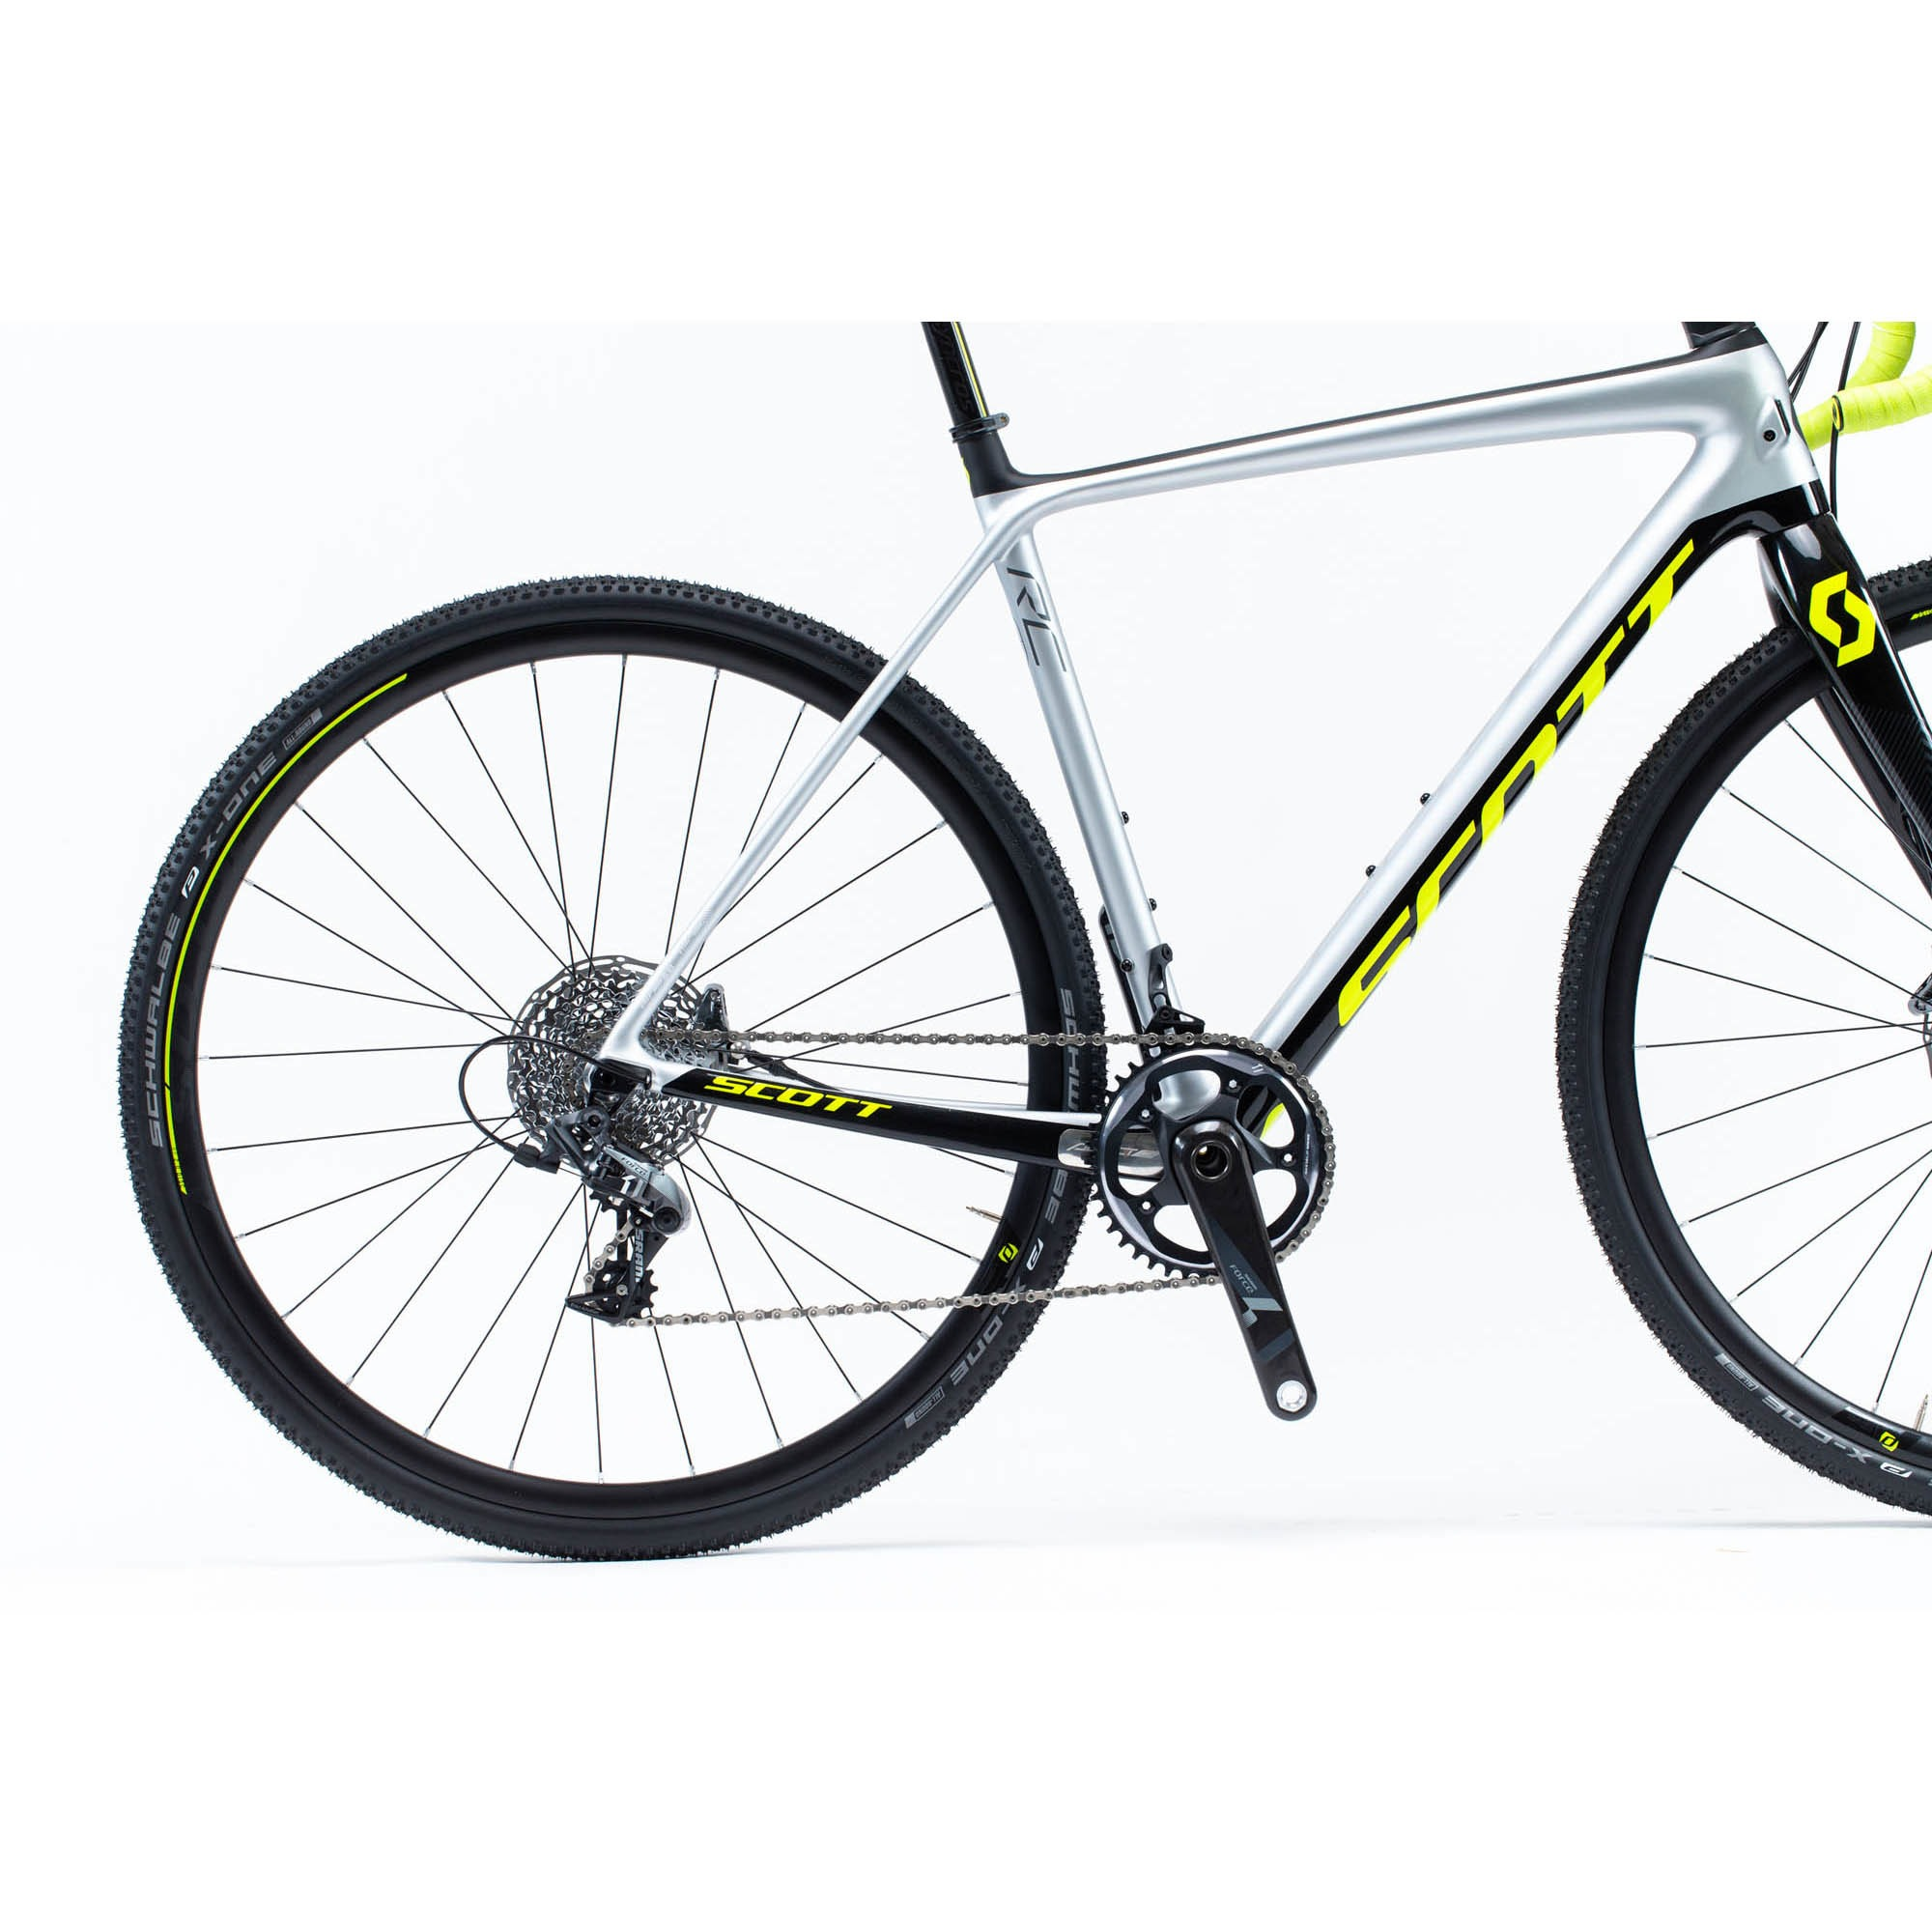 SCOTT Addict CX RC Bike